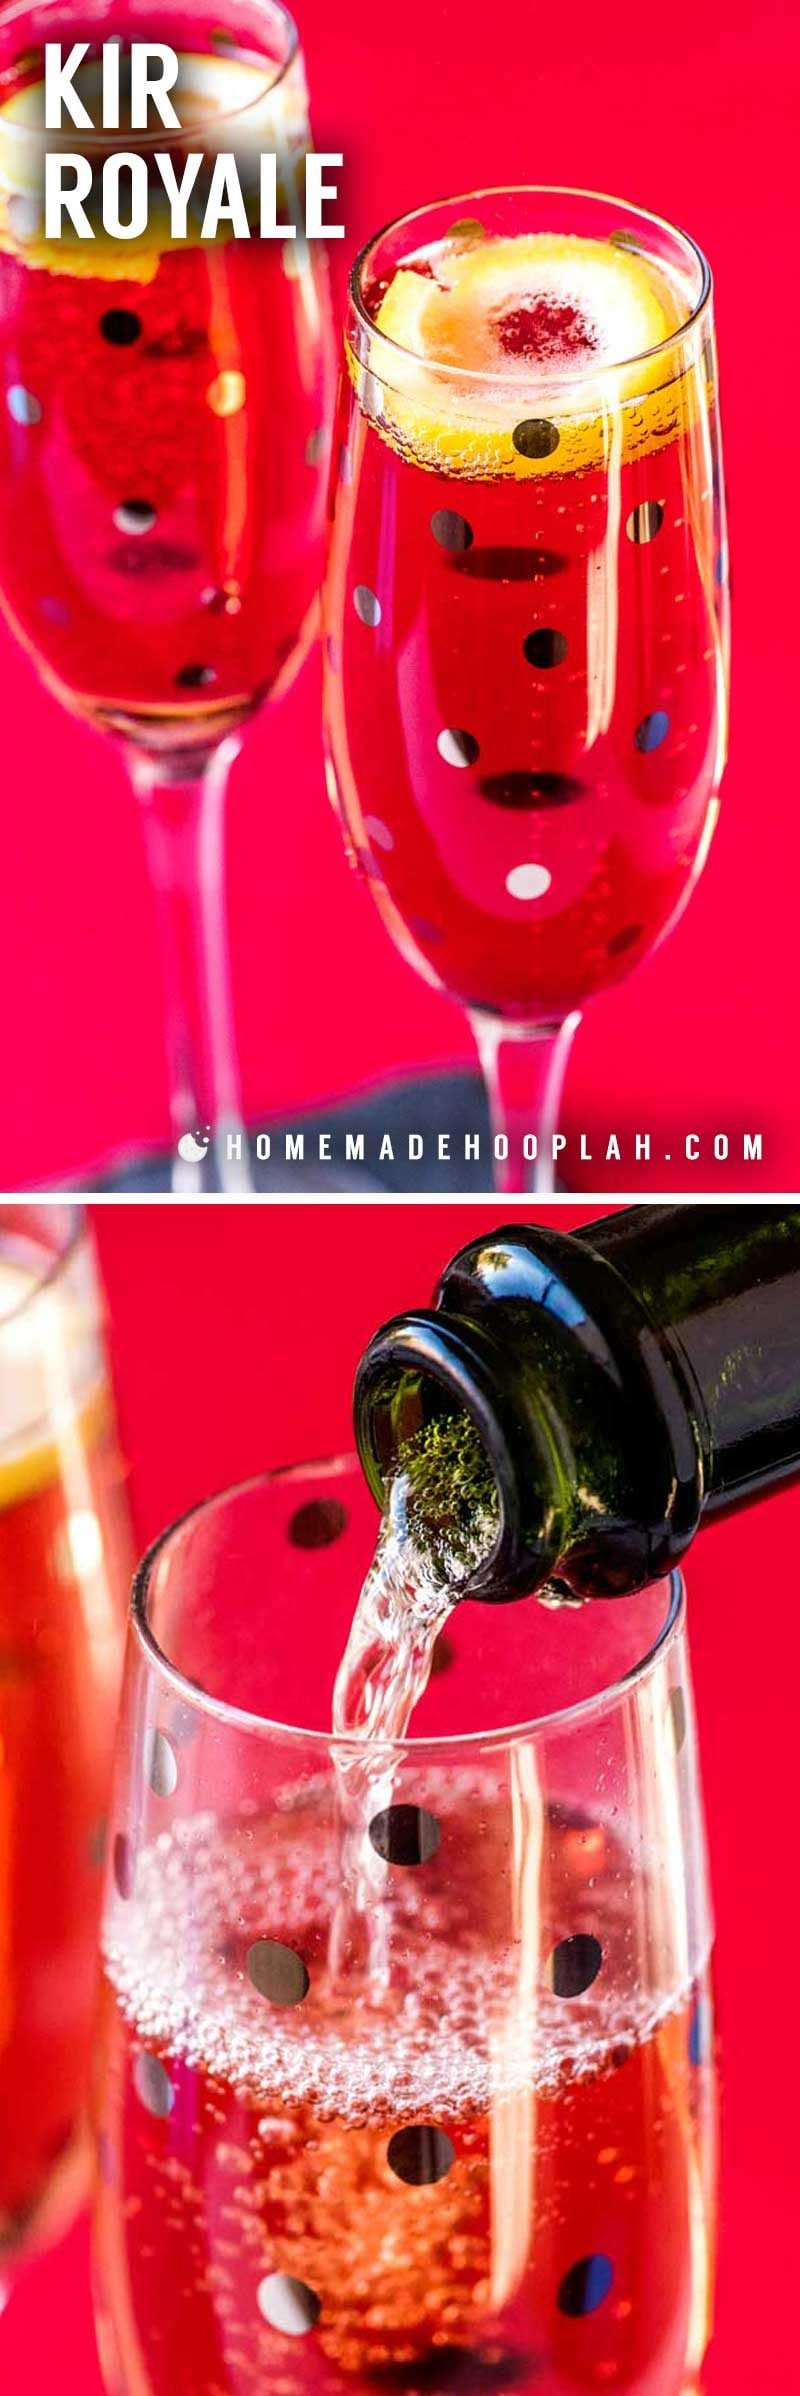 A fun champagne cocktail for any party, event, or holiday!